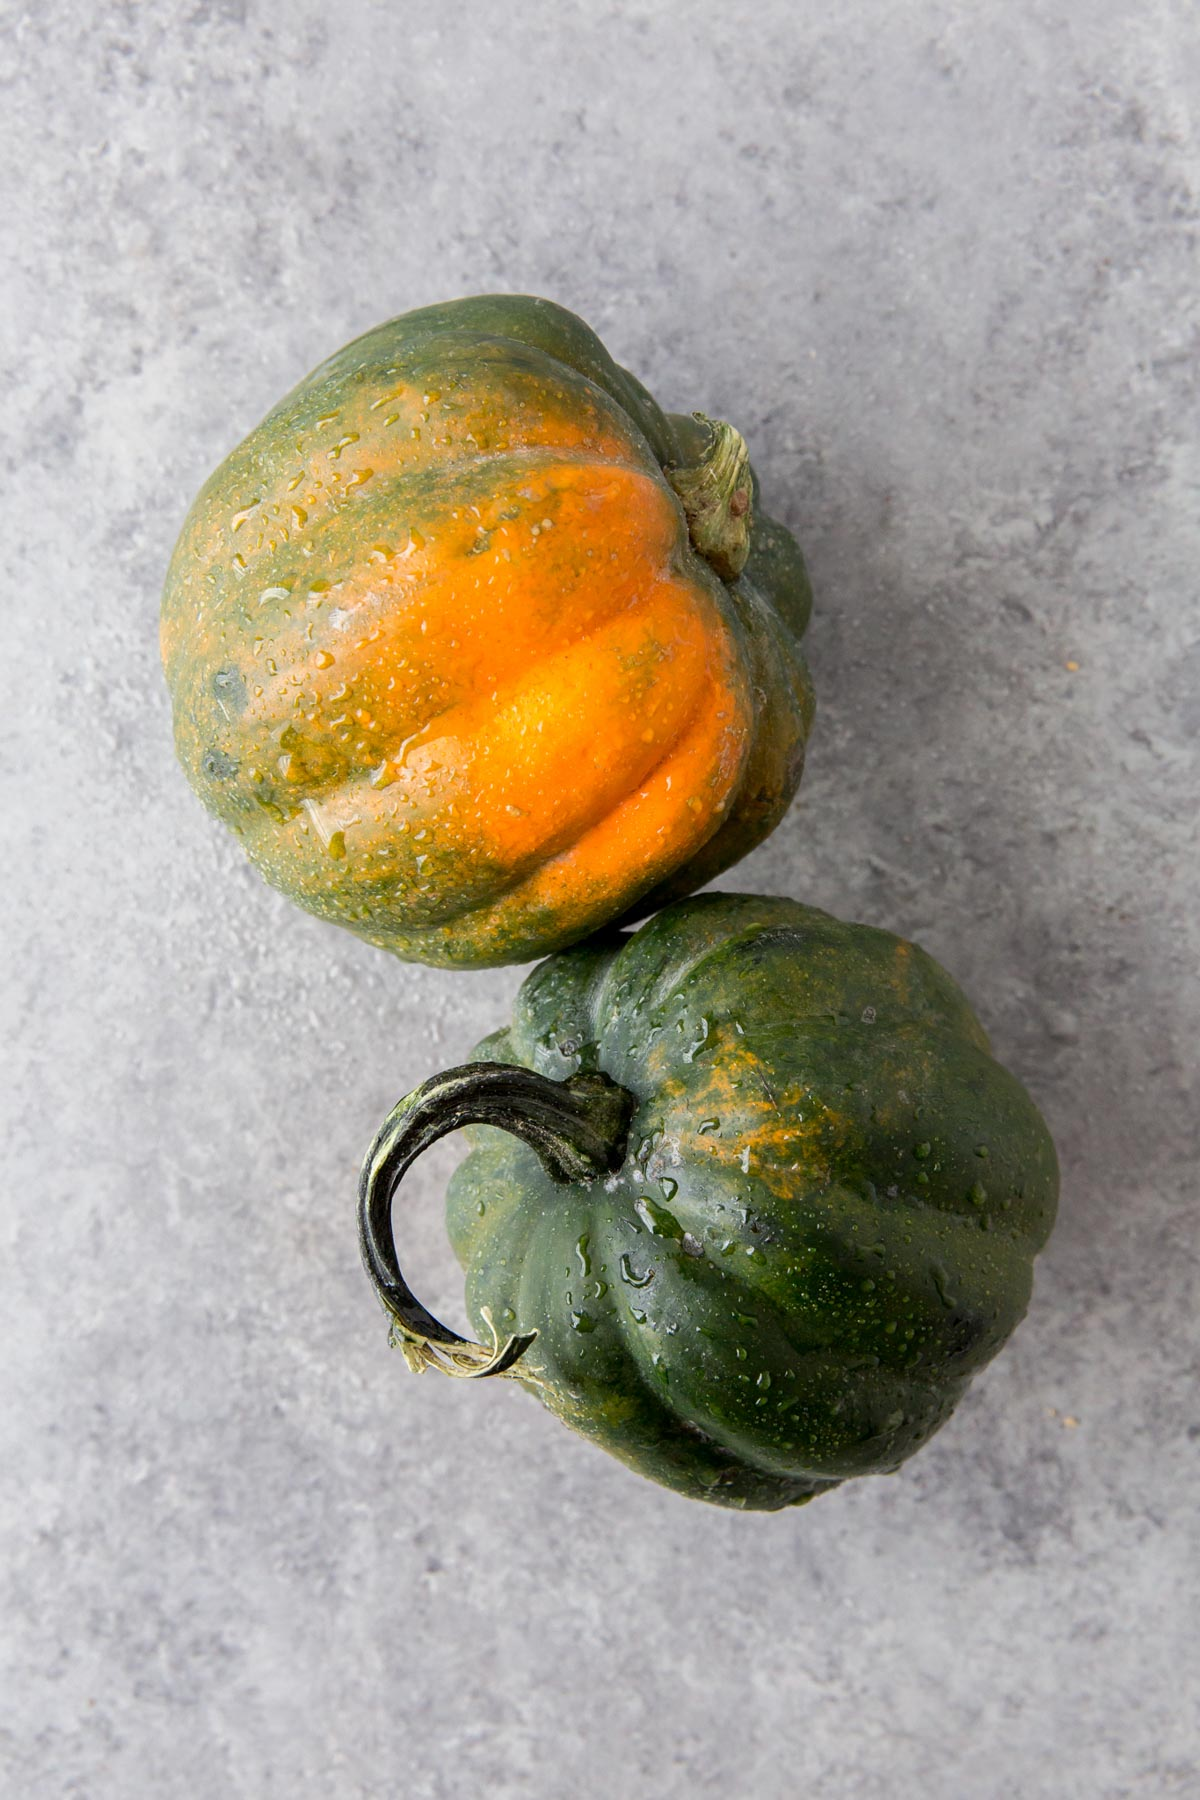 2 whole acorn squash on a gray background